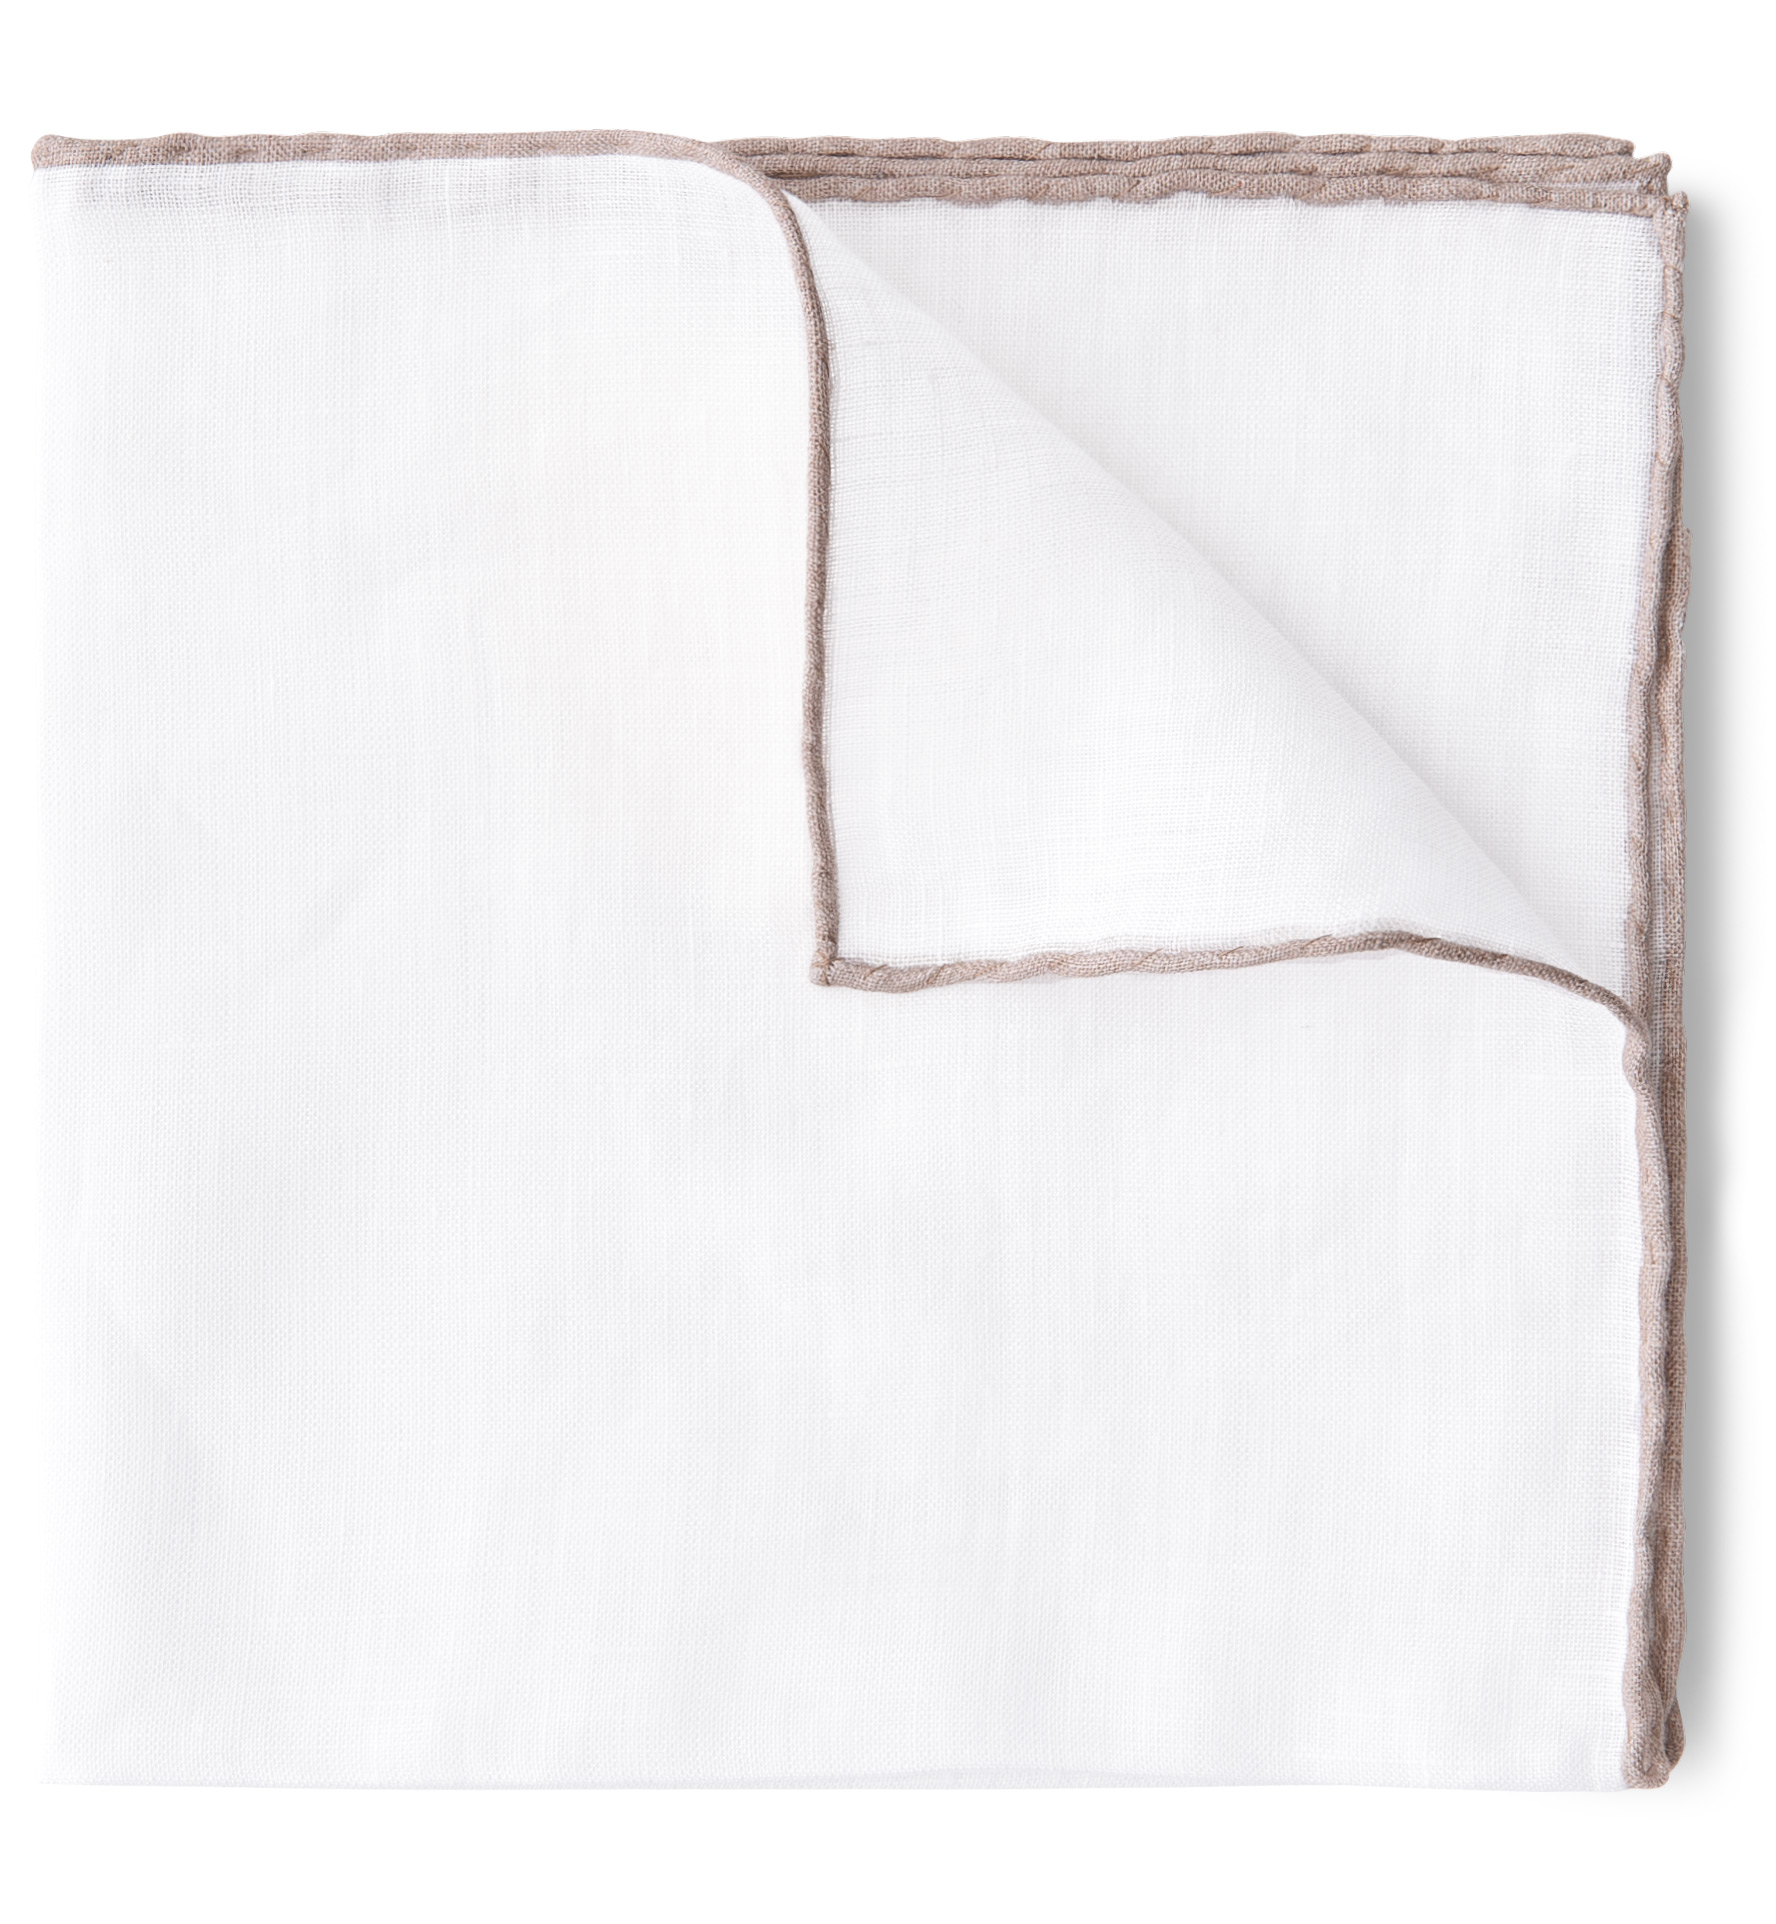 Zoom Image of White with Sand Tipping Linen Pocket Square